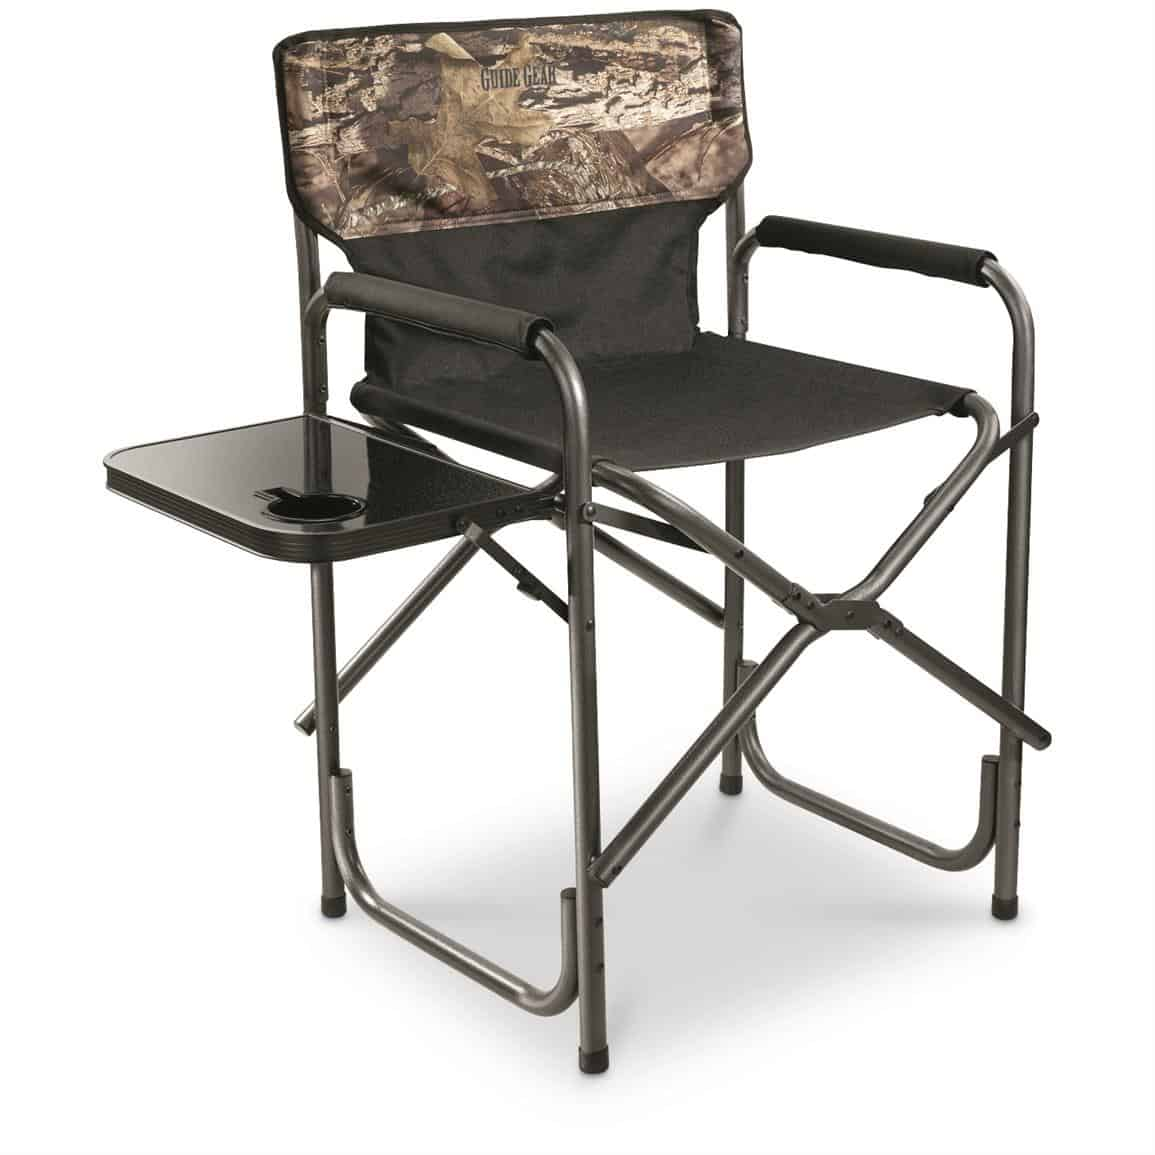 ground blind chair swivel cuddle do you have a that like 24hourcampfire